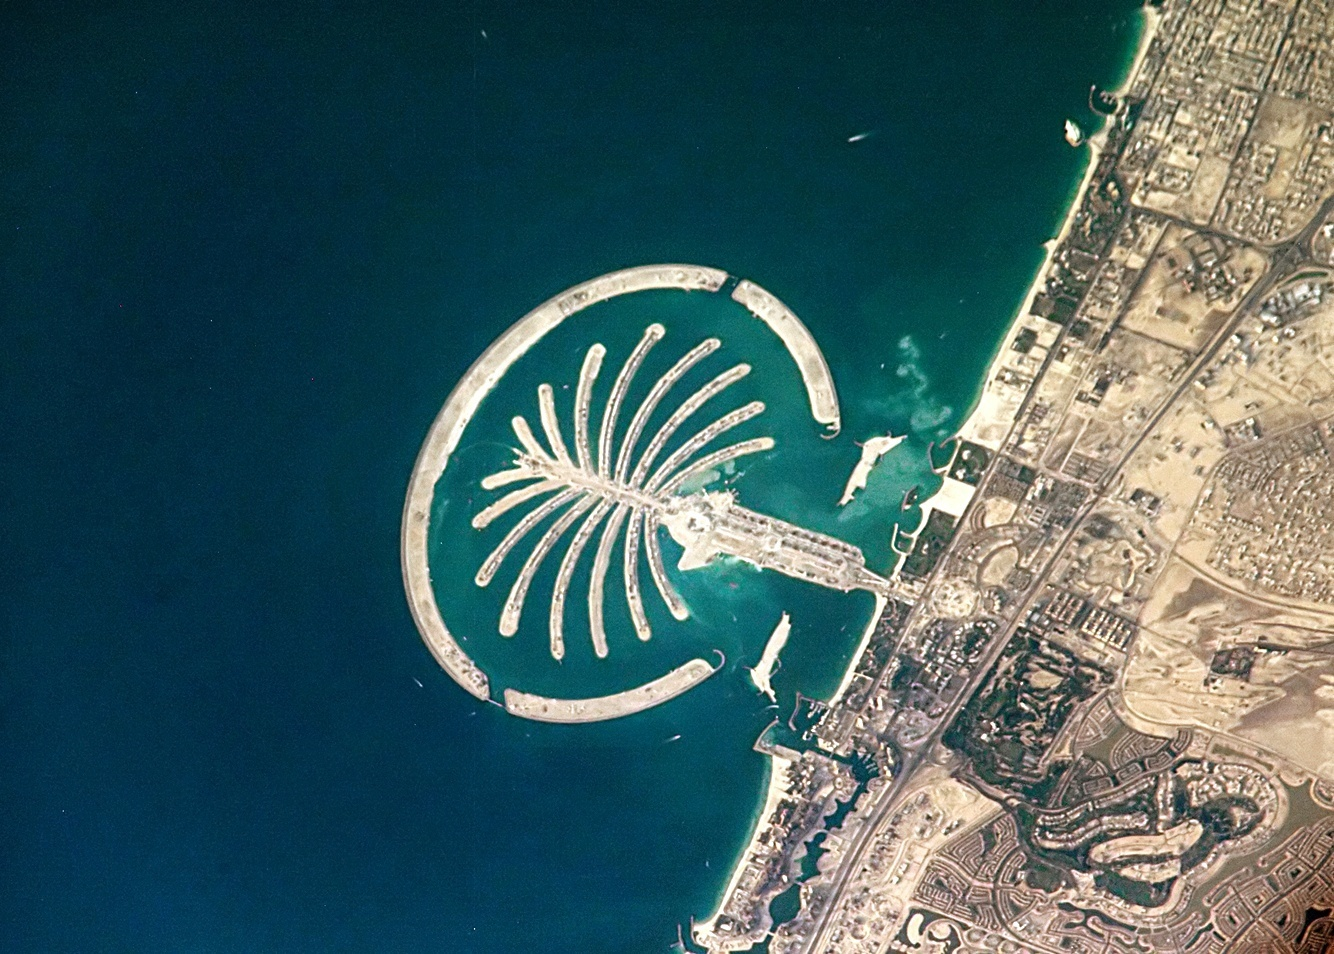 Dubai's palm islands collectively add more than 300 miles to Dubai's coastline.